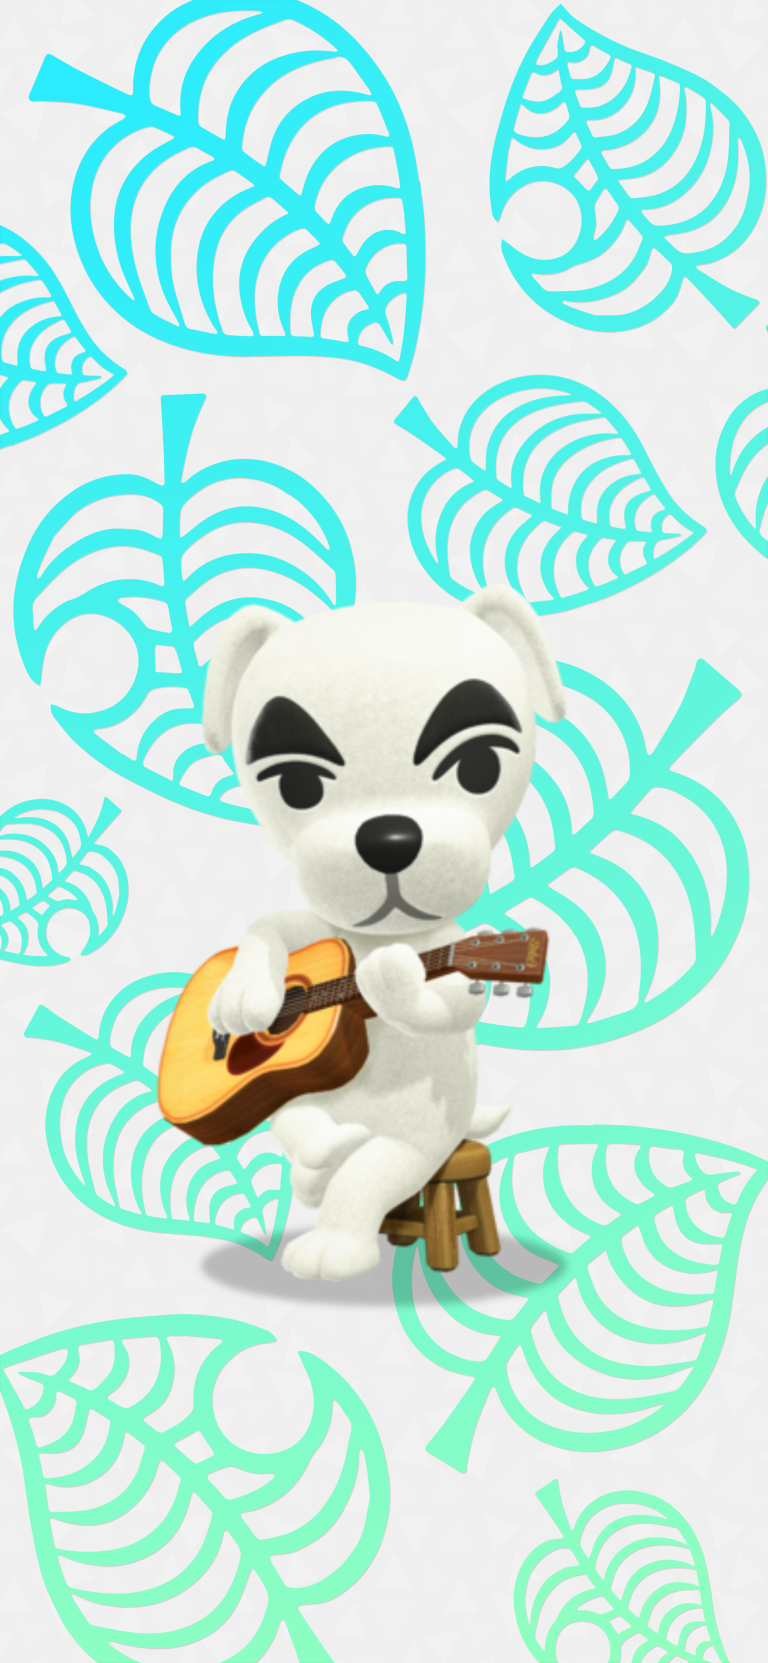 Animal Crossing New Horizons Phone Wallpapers Free For The Community 2 Crossingcharm Animal Crossing Animal Crossing Characters Character Wallpaper